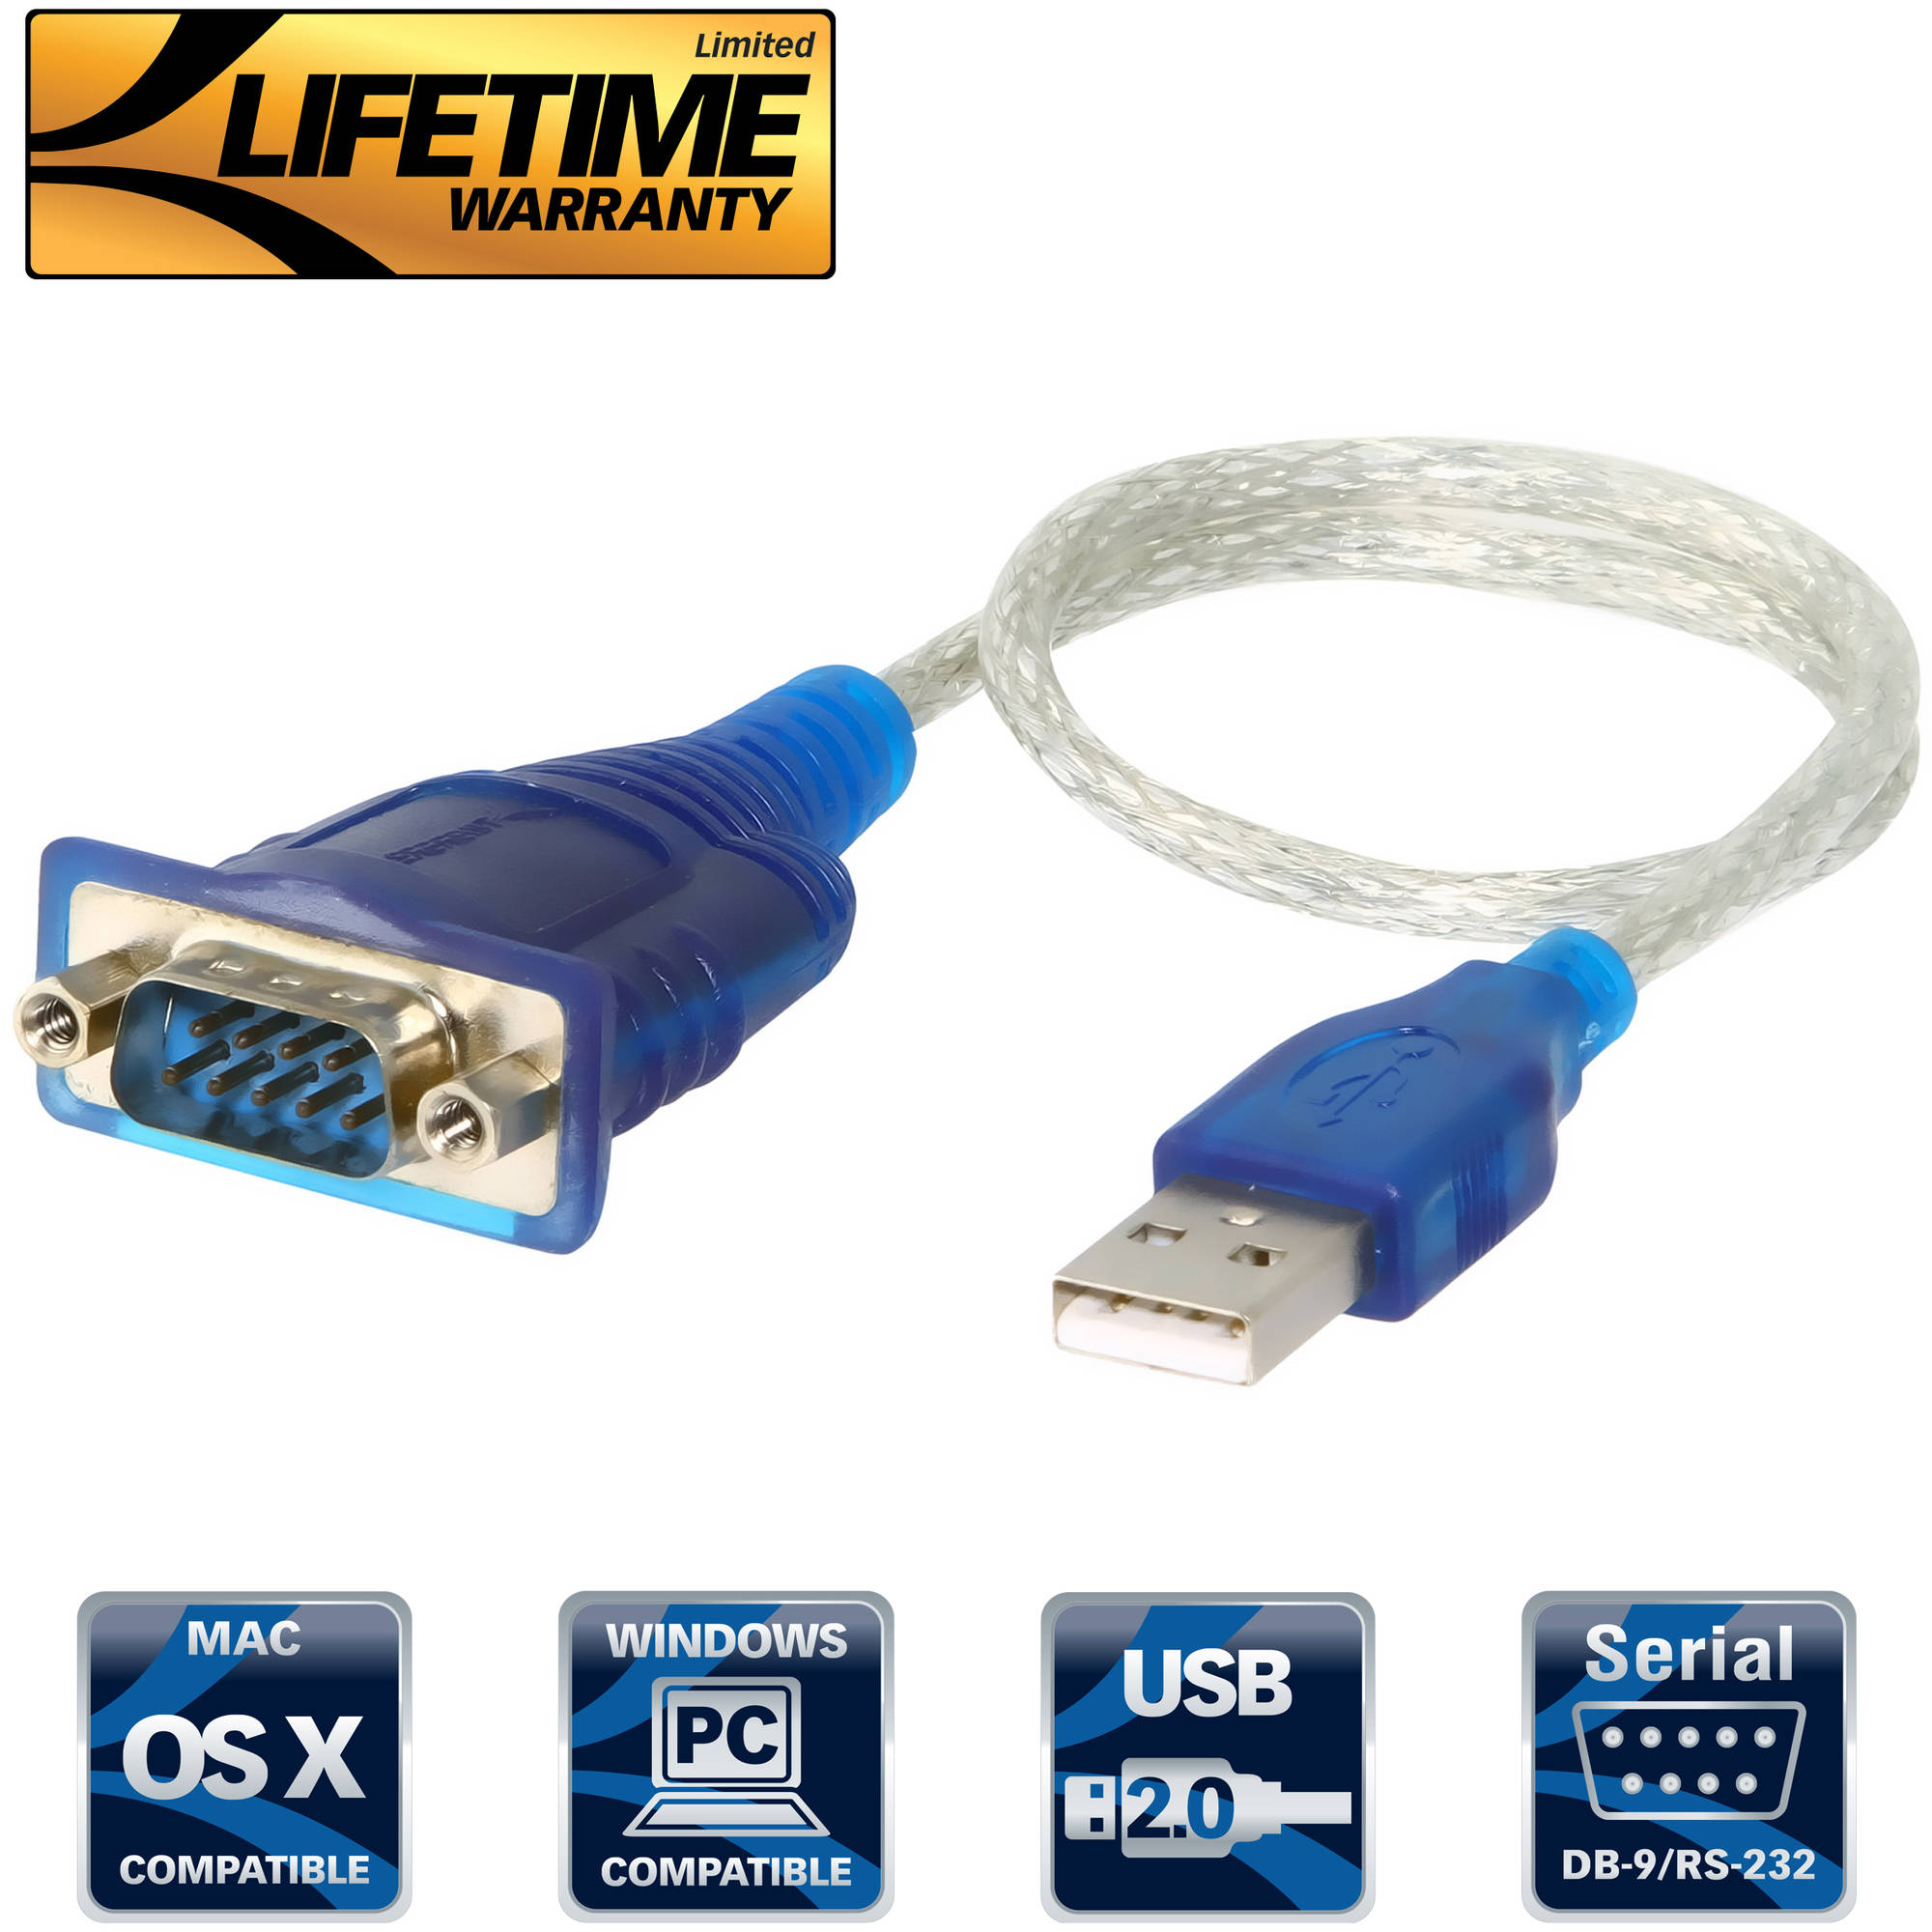 Sabrent USB to Serial (9-pin) DB-9 RS-232 Adapter Cable - Blue